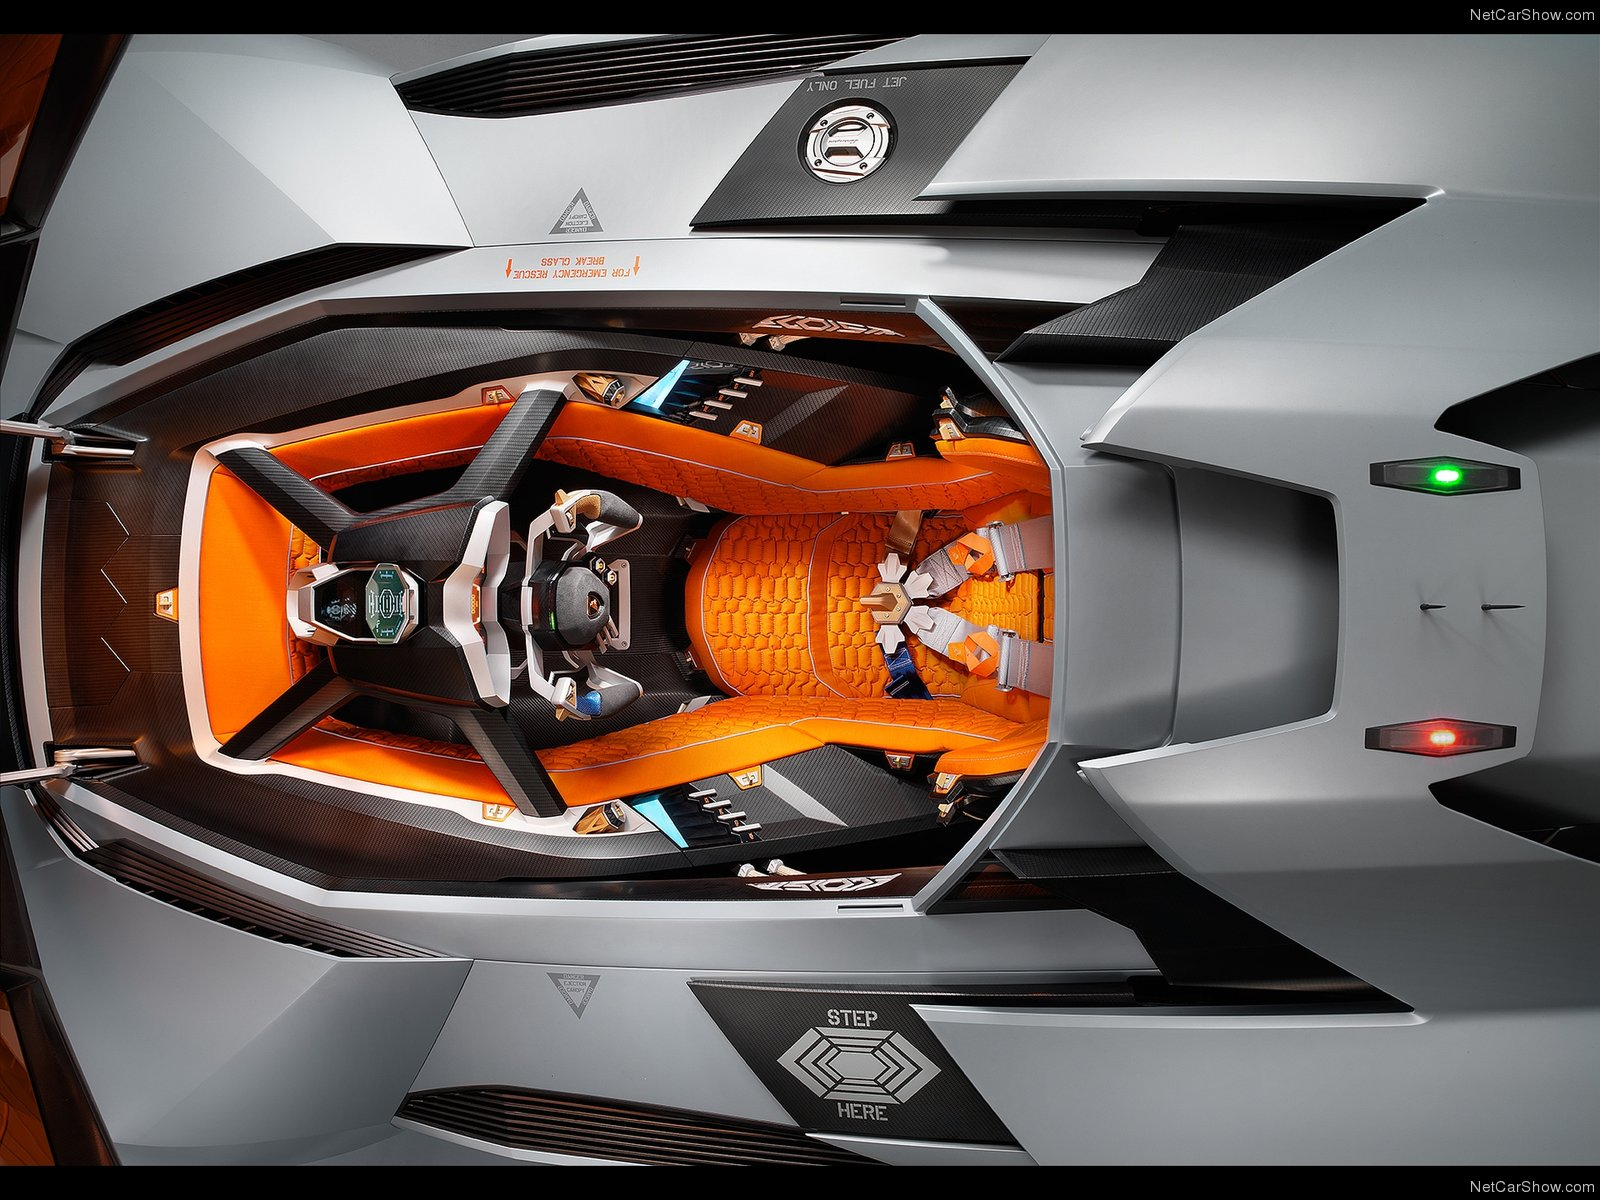 2013 lamborghini egoista concept review spec release date picture and price autocarsblitz. Black Bedroom Furniture Sets. Home Design Ideas